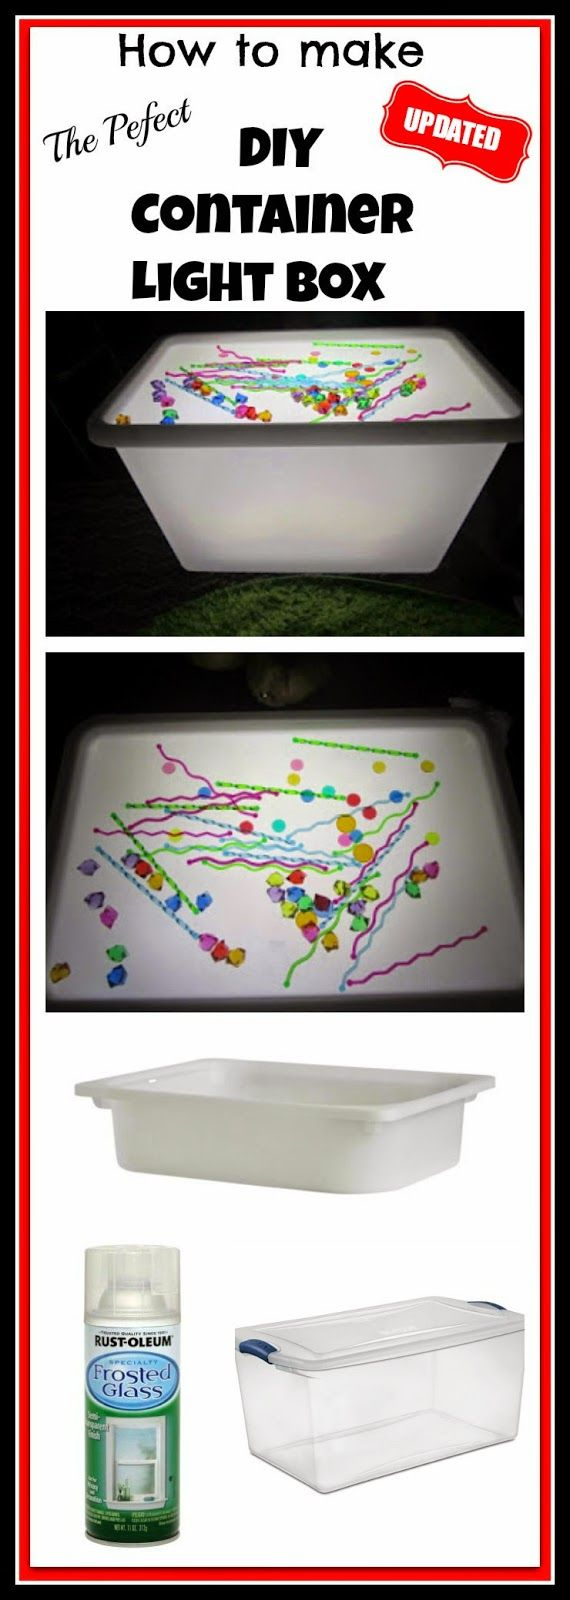 """CAUTION! Twins at play!: The Perfect DIY """"container"""" light box"""